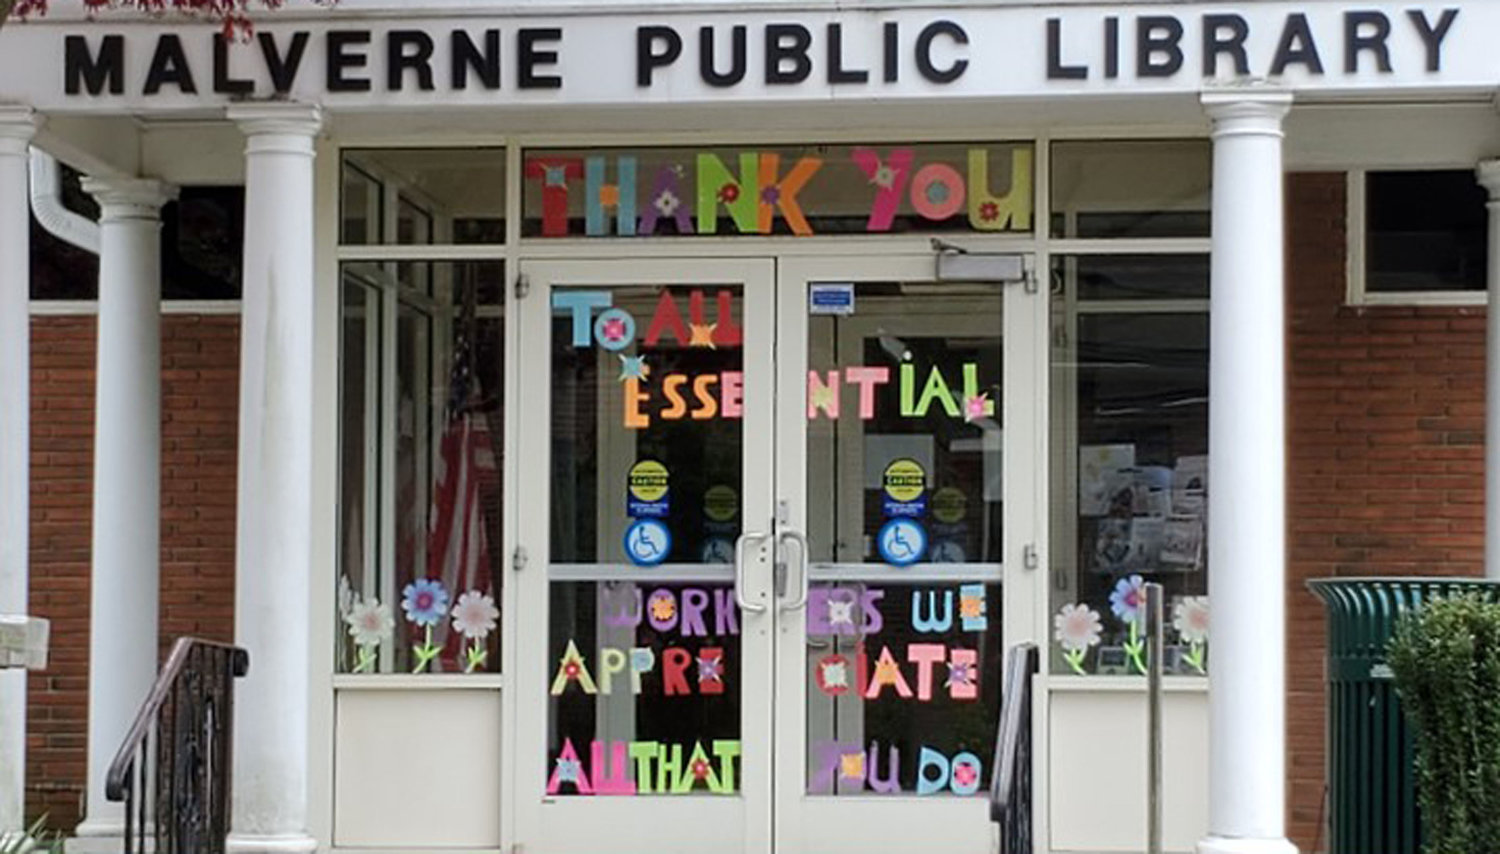 The Malverne Library decorated their entrance to thank essential workers in the village. The idea for the creation came from Malvernite Mari-Leigh Carroll.